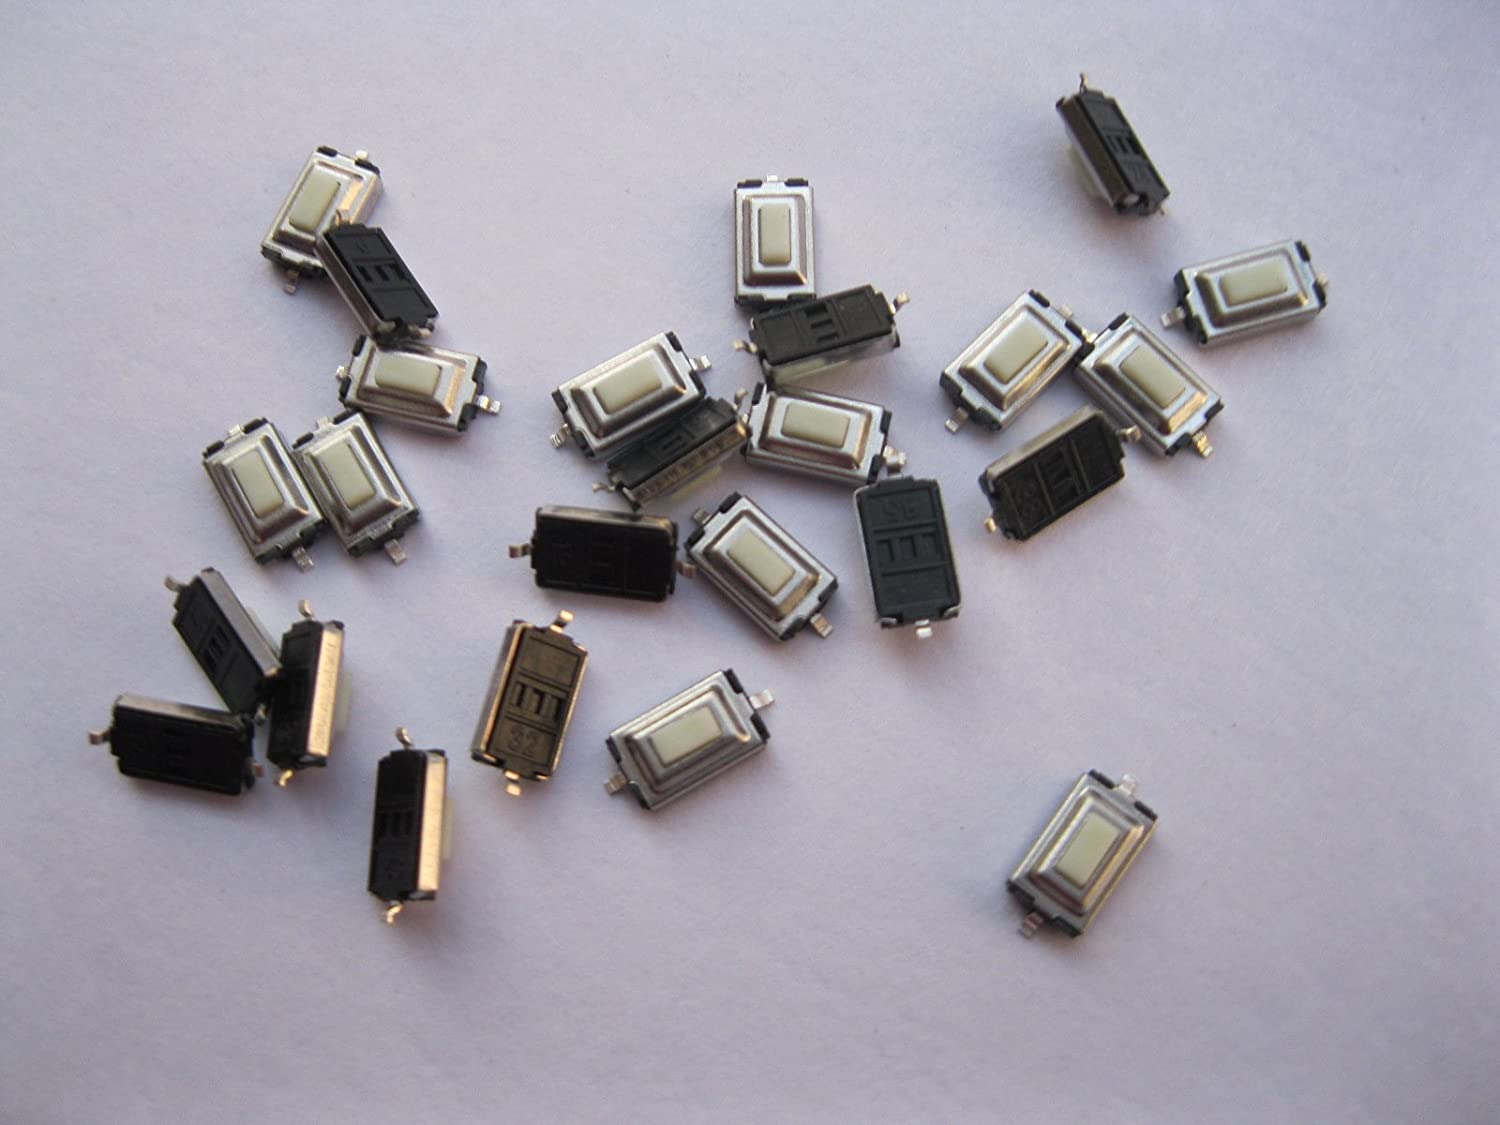 50 Pcs 3x6x25mm Momentary Tact Smd Smt Pushbutton Micro Details About Latching Push Button Switch Rectangular Dc 2 Pin Skywalking Home Improvement